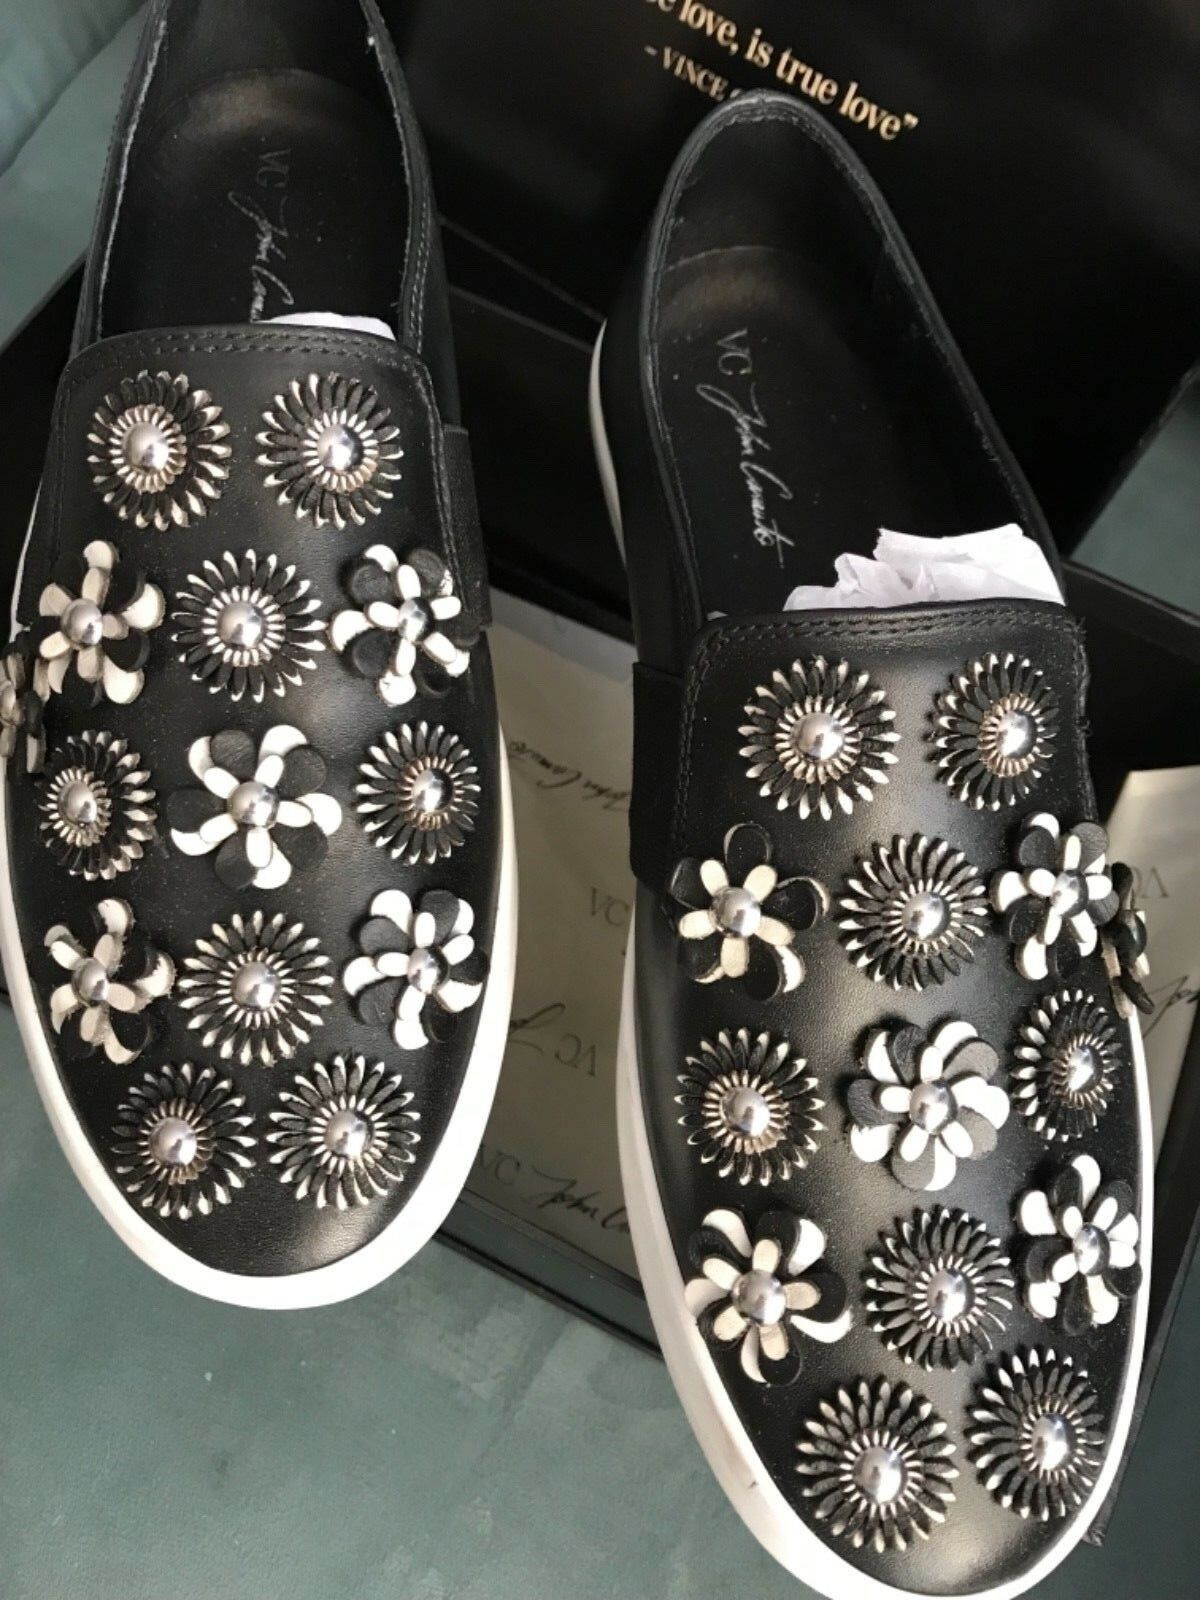 VINCE CAMUTO SNEAKERS FLOWER EMBELLISHED GLOSSY BLACK BLACK BLACK LEATHER SIZE 7 SUPER CUTE 9a7bd9